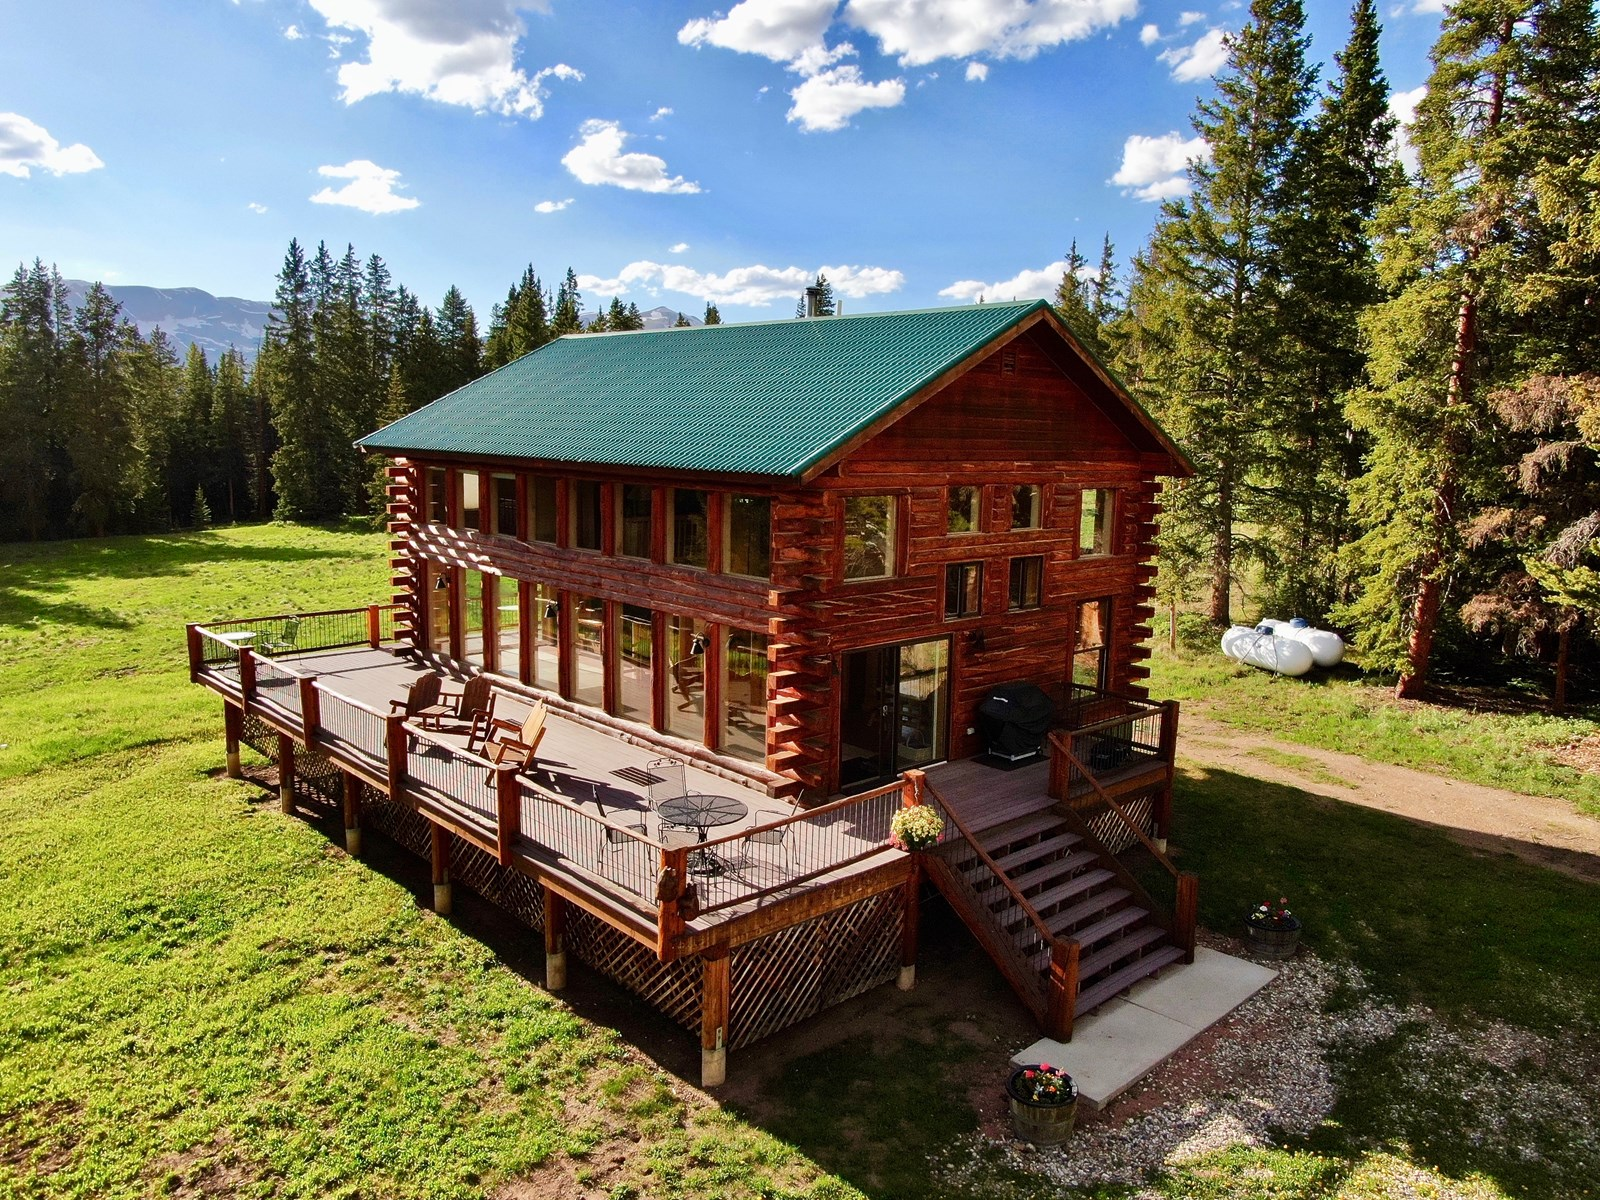 COLORADO MOUNTAIN CABIN RETREAT FOR SALE